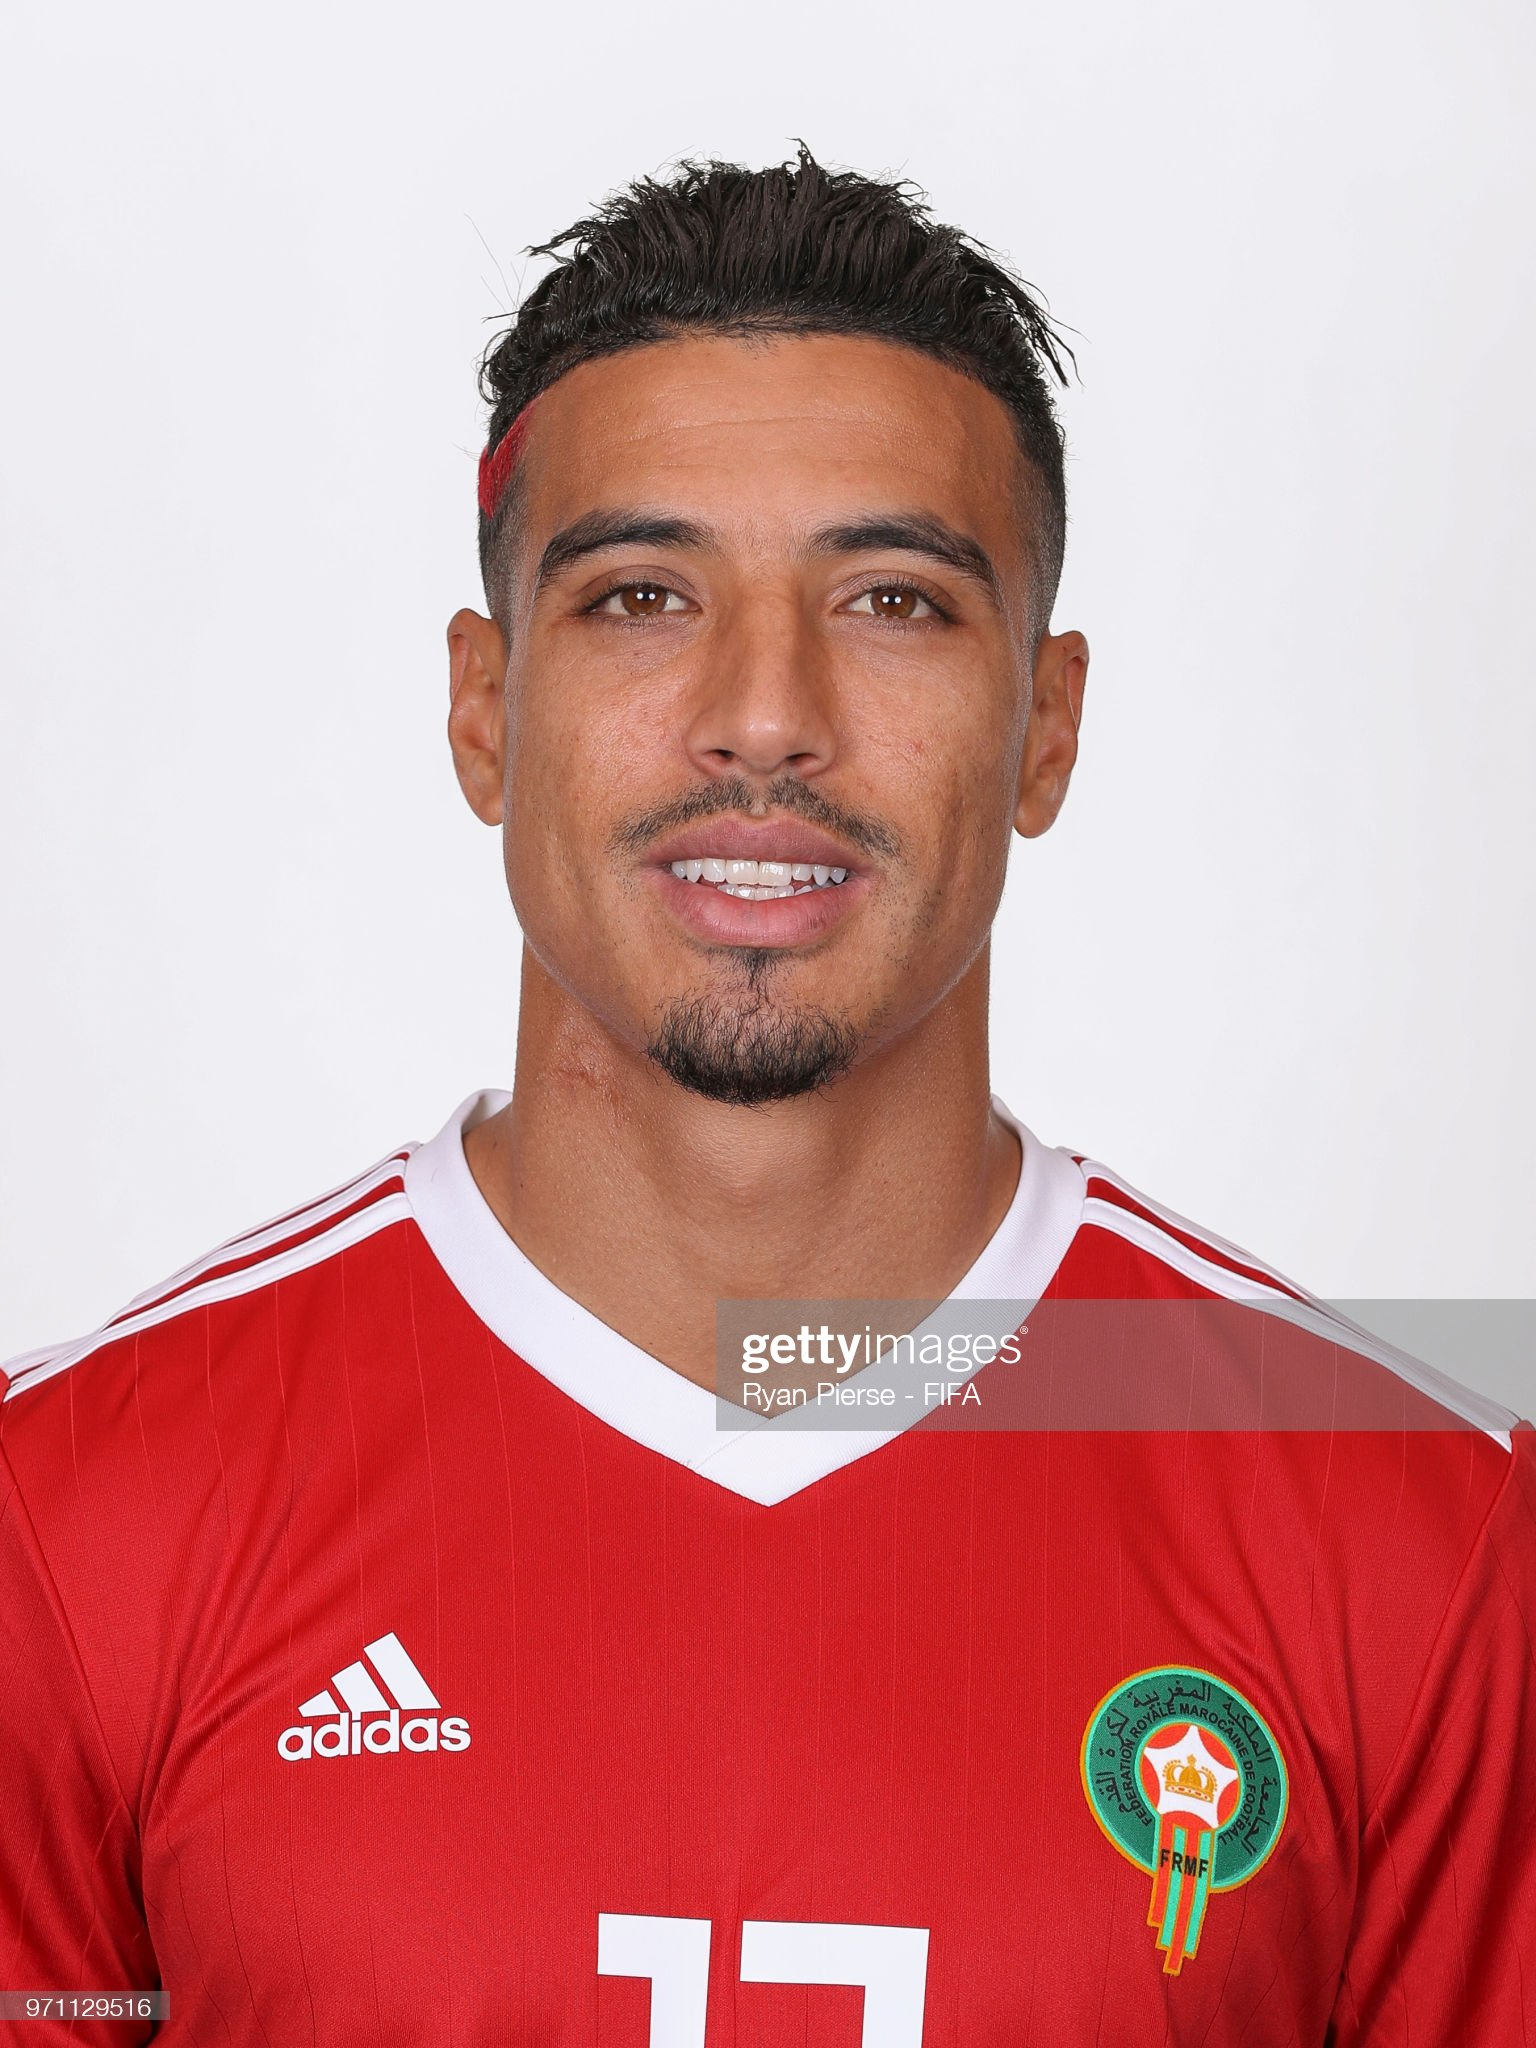 Norteafricanos Nabil-dirar-of-morocco-poses-during-the-official-fifa-world-cup-2018-picture-id971129516?s=2048x2048